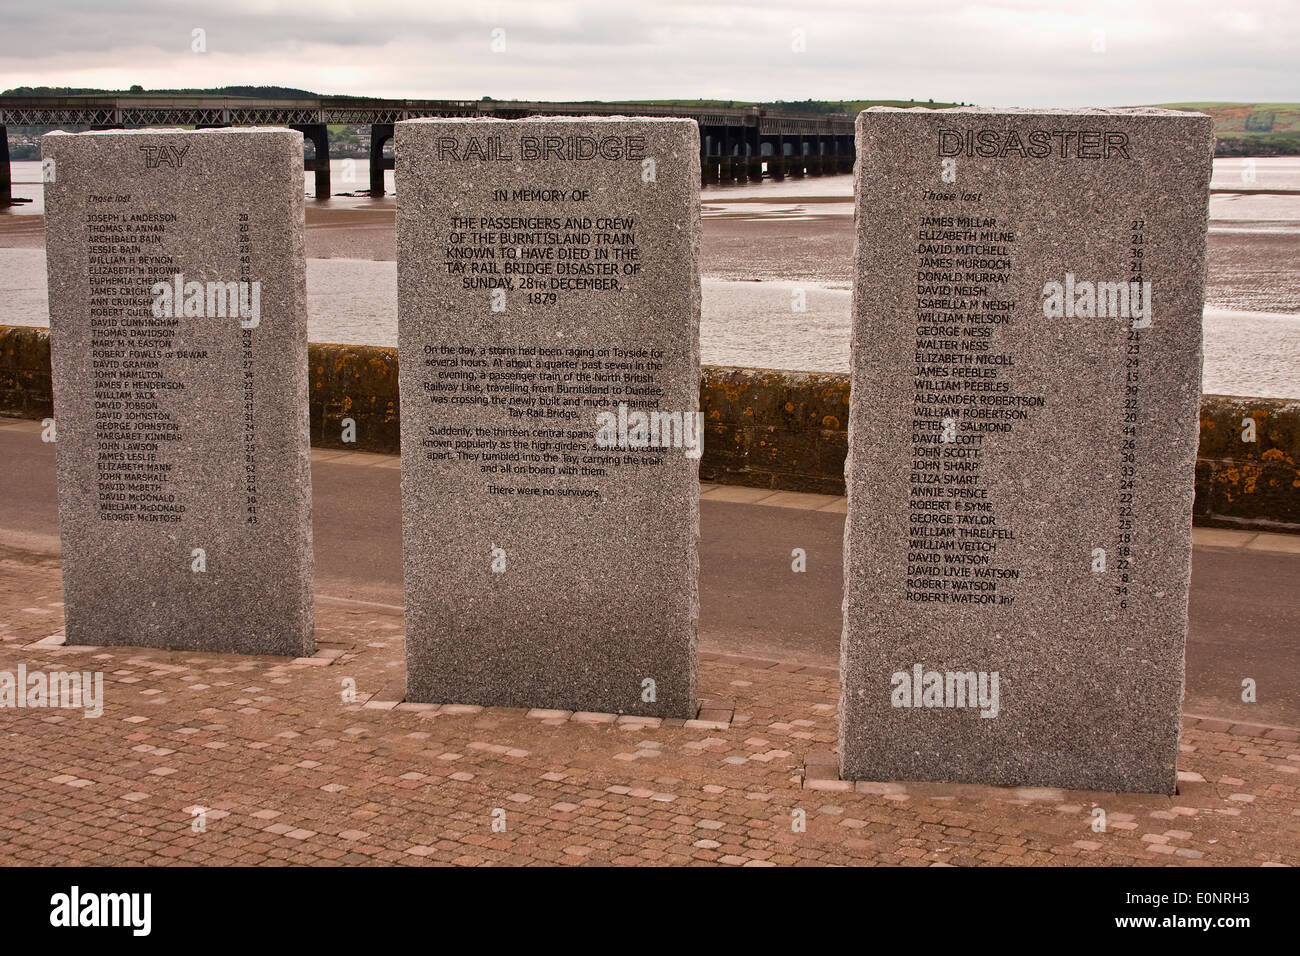 Memorial Sculptures with passengers and crew names that lost their lives from The 1879 Tay Railway Bridge Disaster Stock Photo